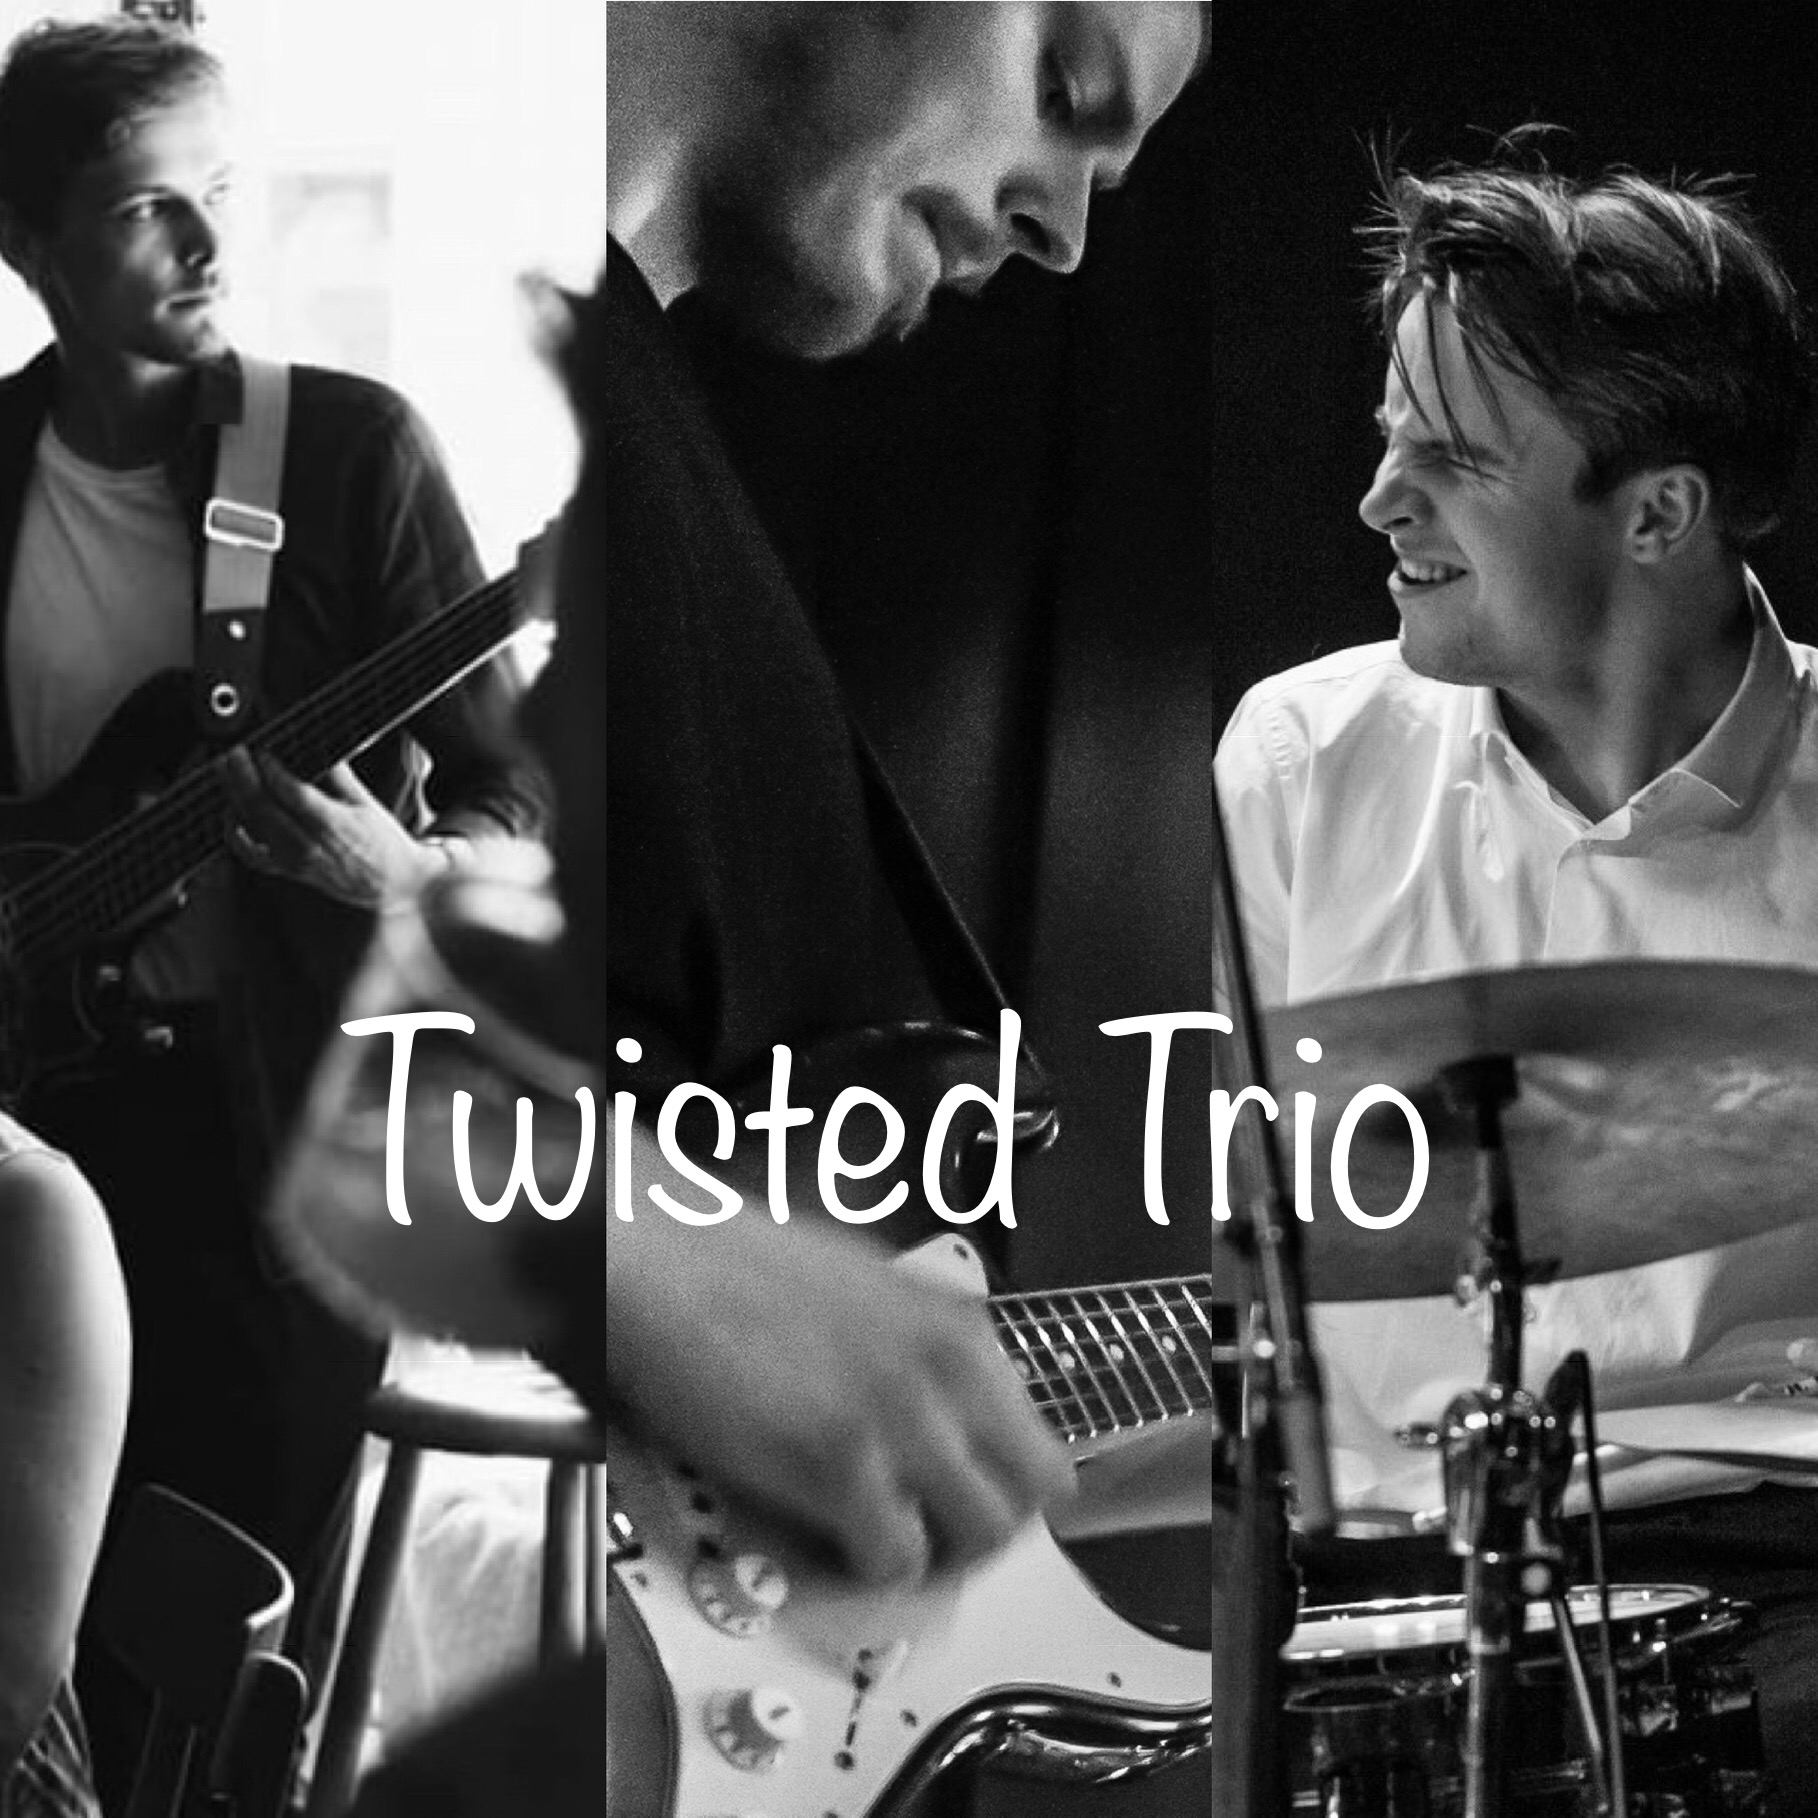 Twisted Trio - TIME: 21:00STAGE: BLACK ROOMVIEW PROGRAM